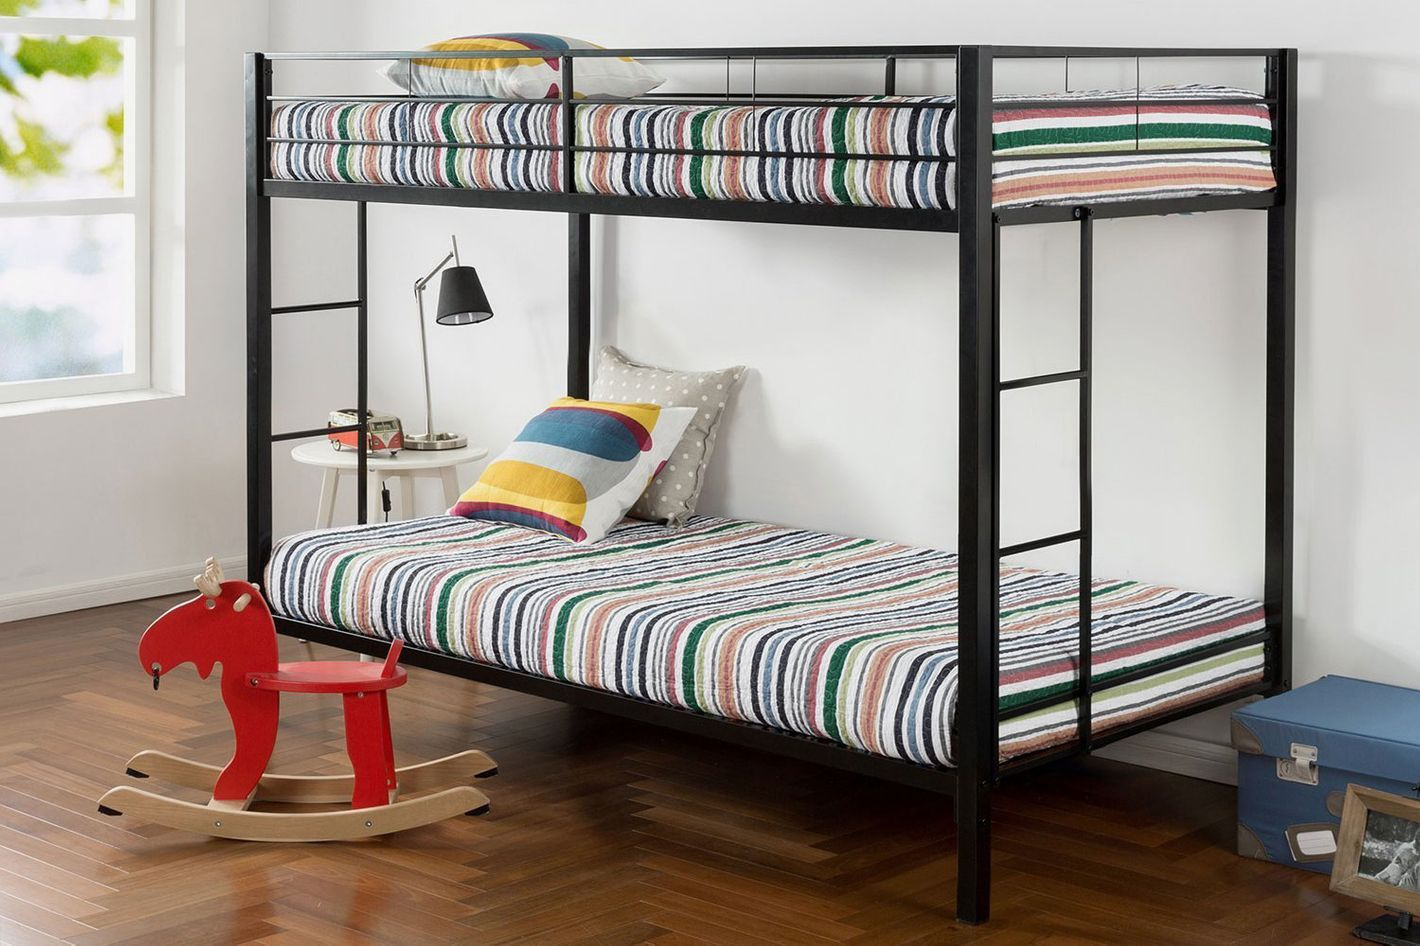 10 Best Bunk Beds 2019